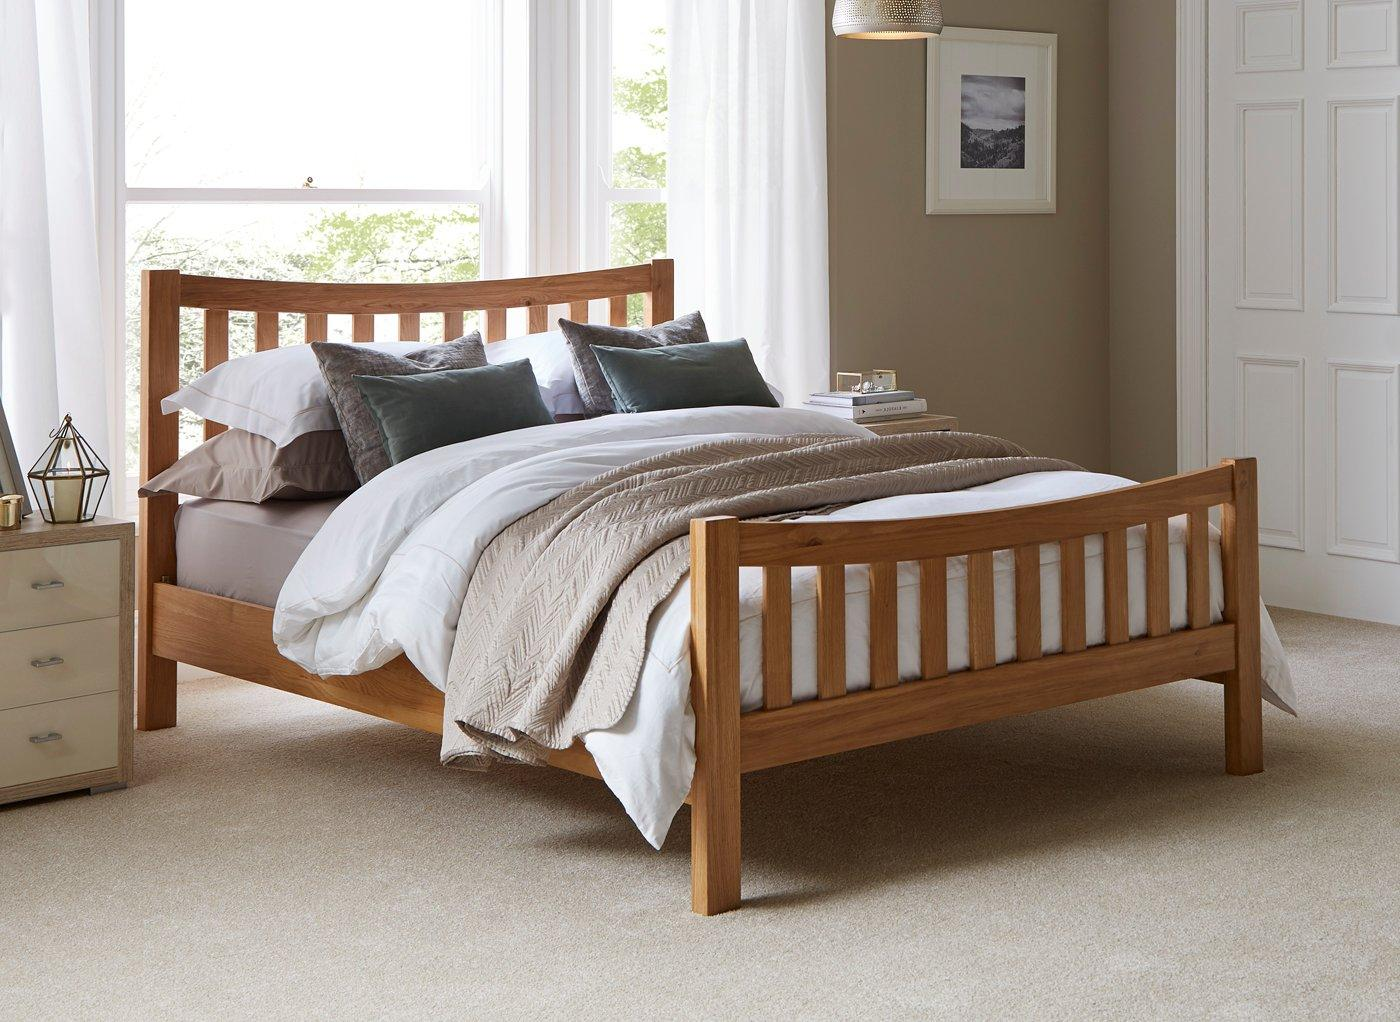 Sherwood Wooden Bed Frame | All Beds | Beds | Dreams